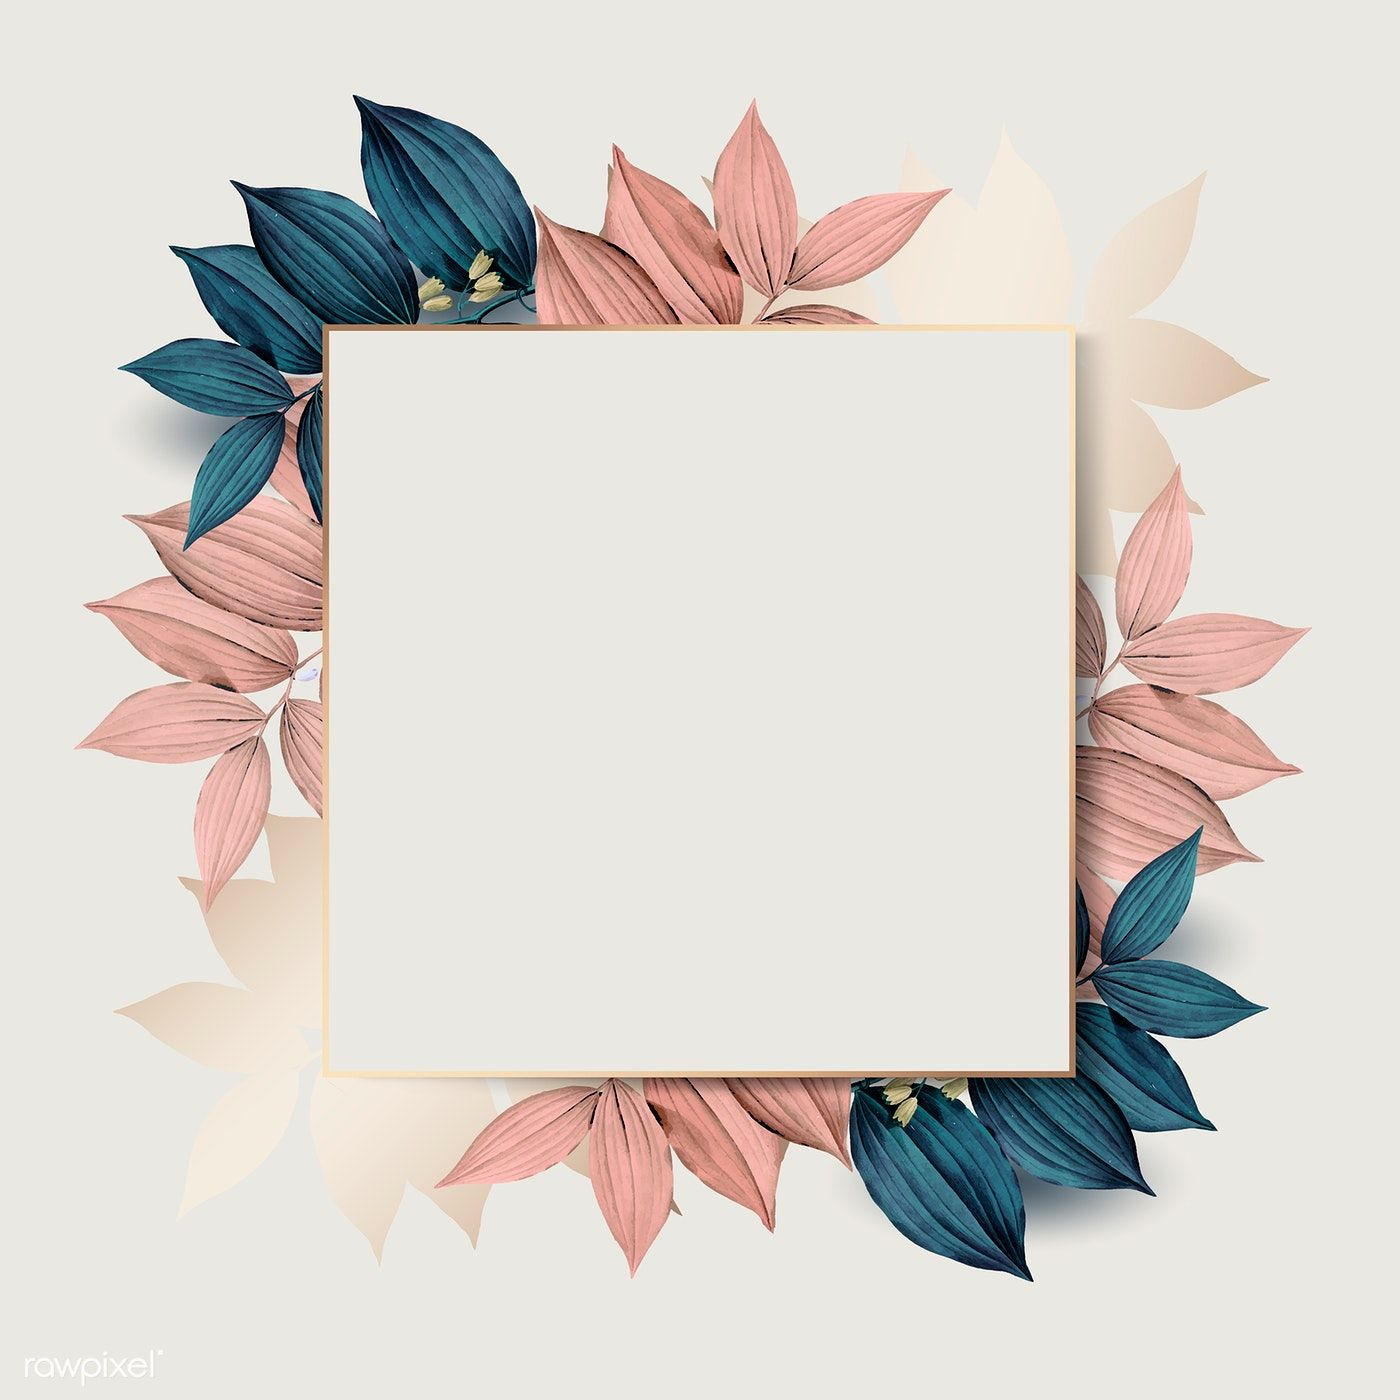 Download premium vector of Square gold frame on pink and